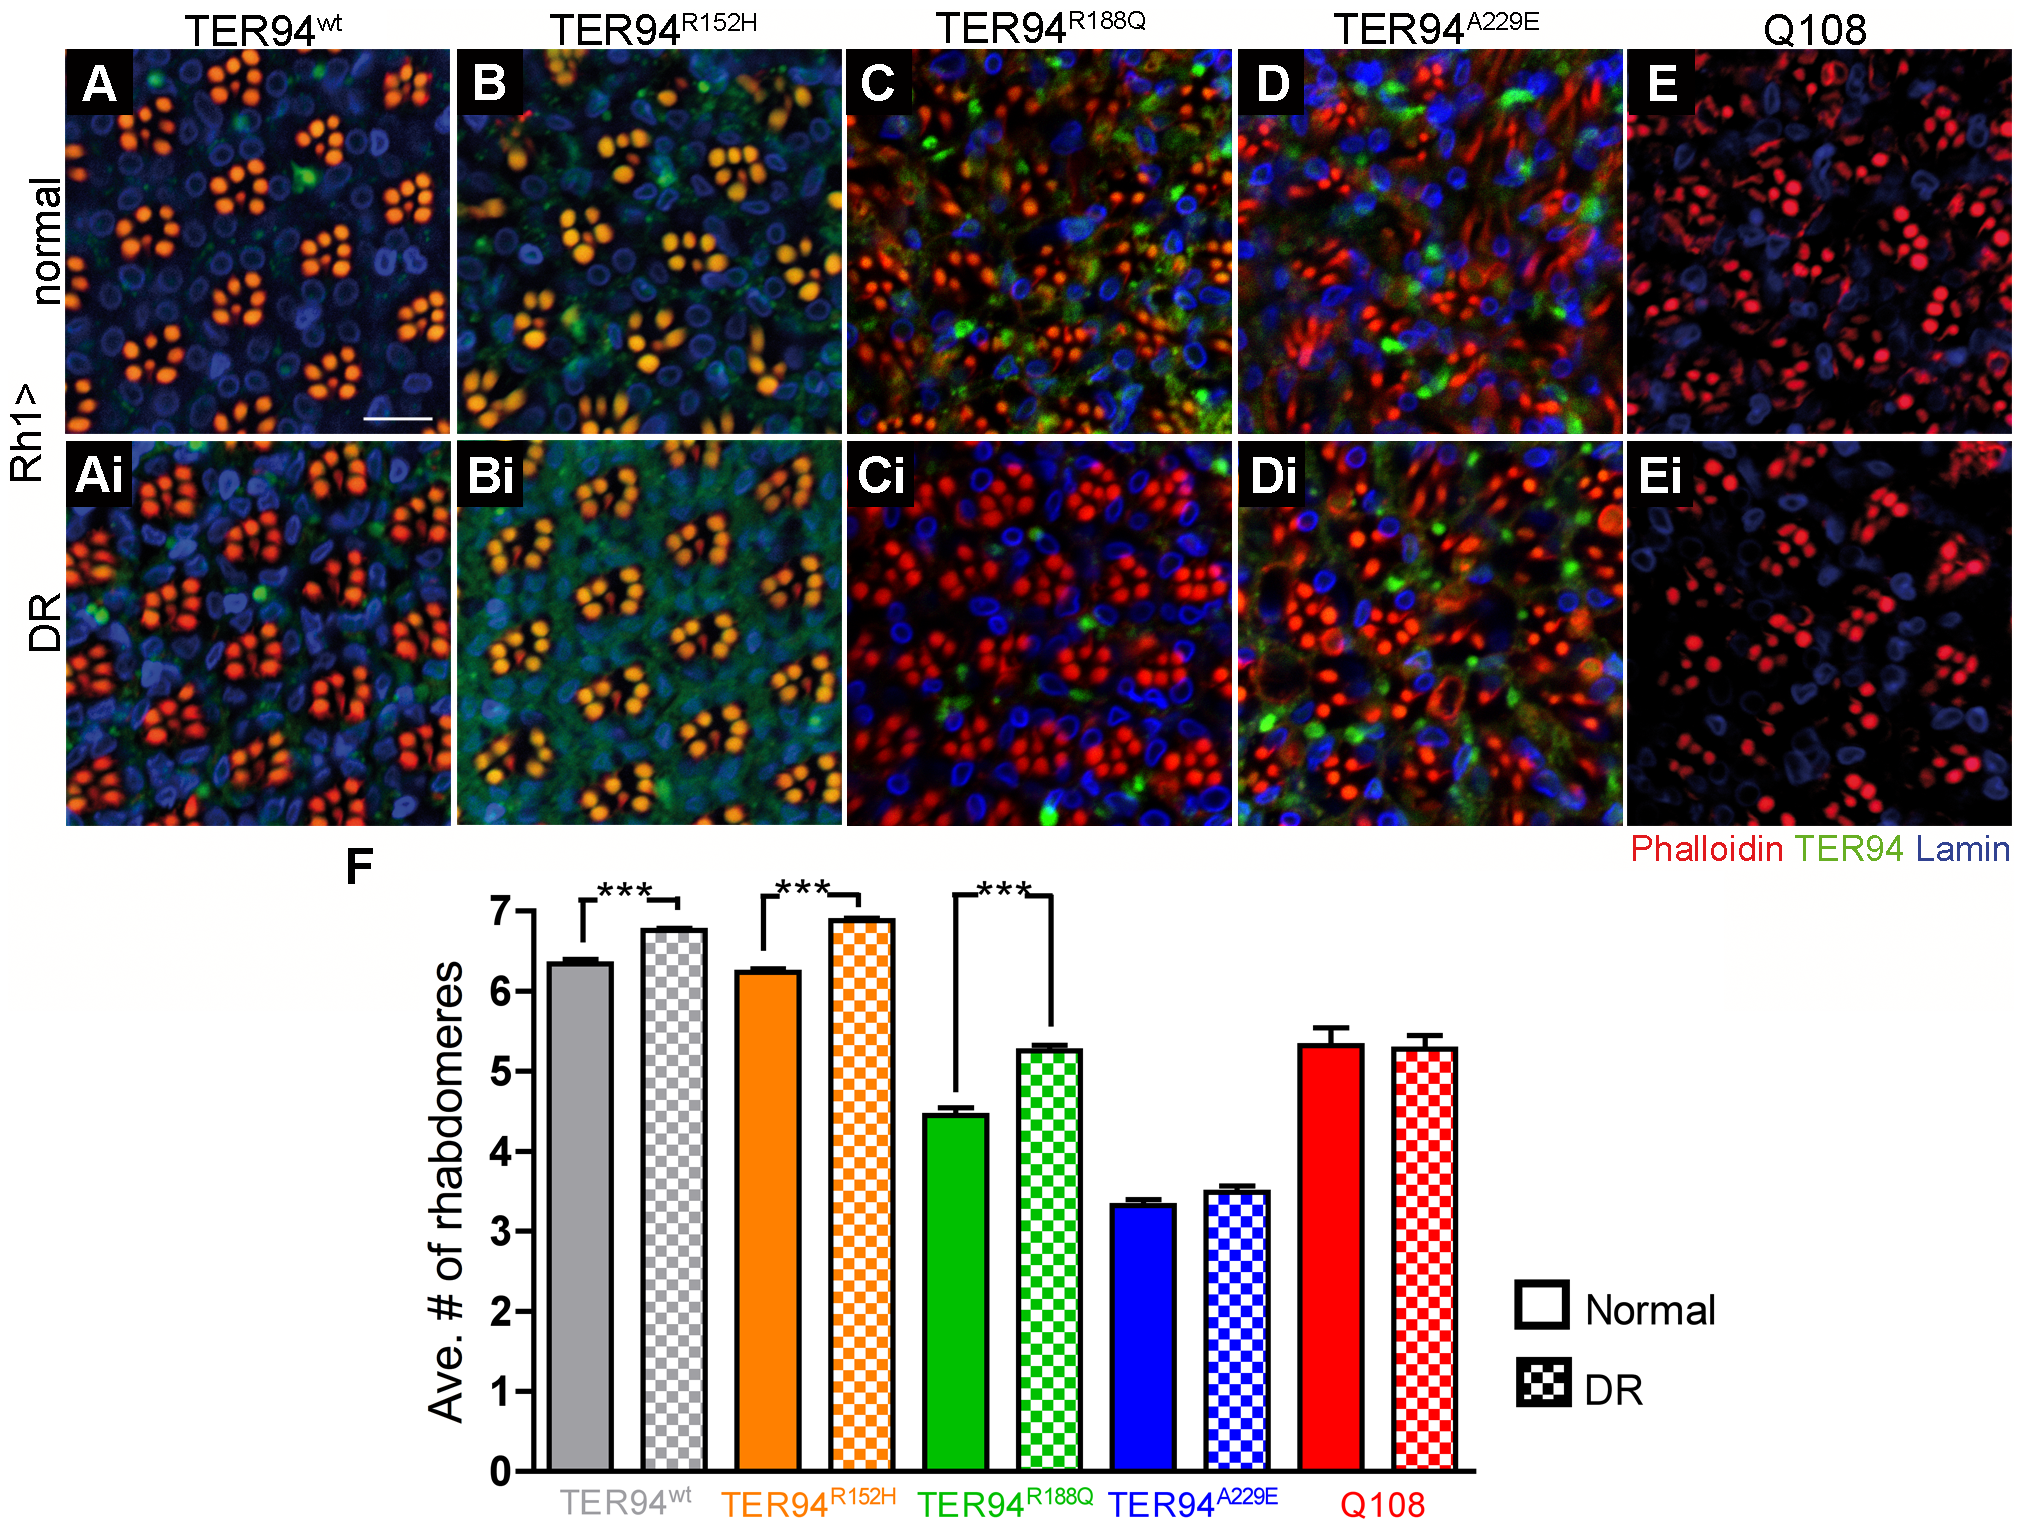 Dietary restriction (DR) alleviates neurodegeneration induced by pathogenic TER94 mutants.